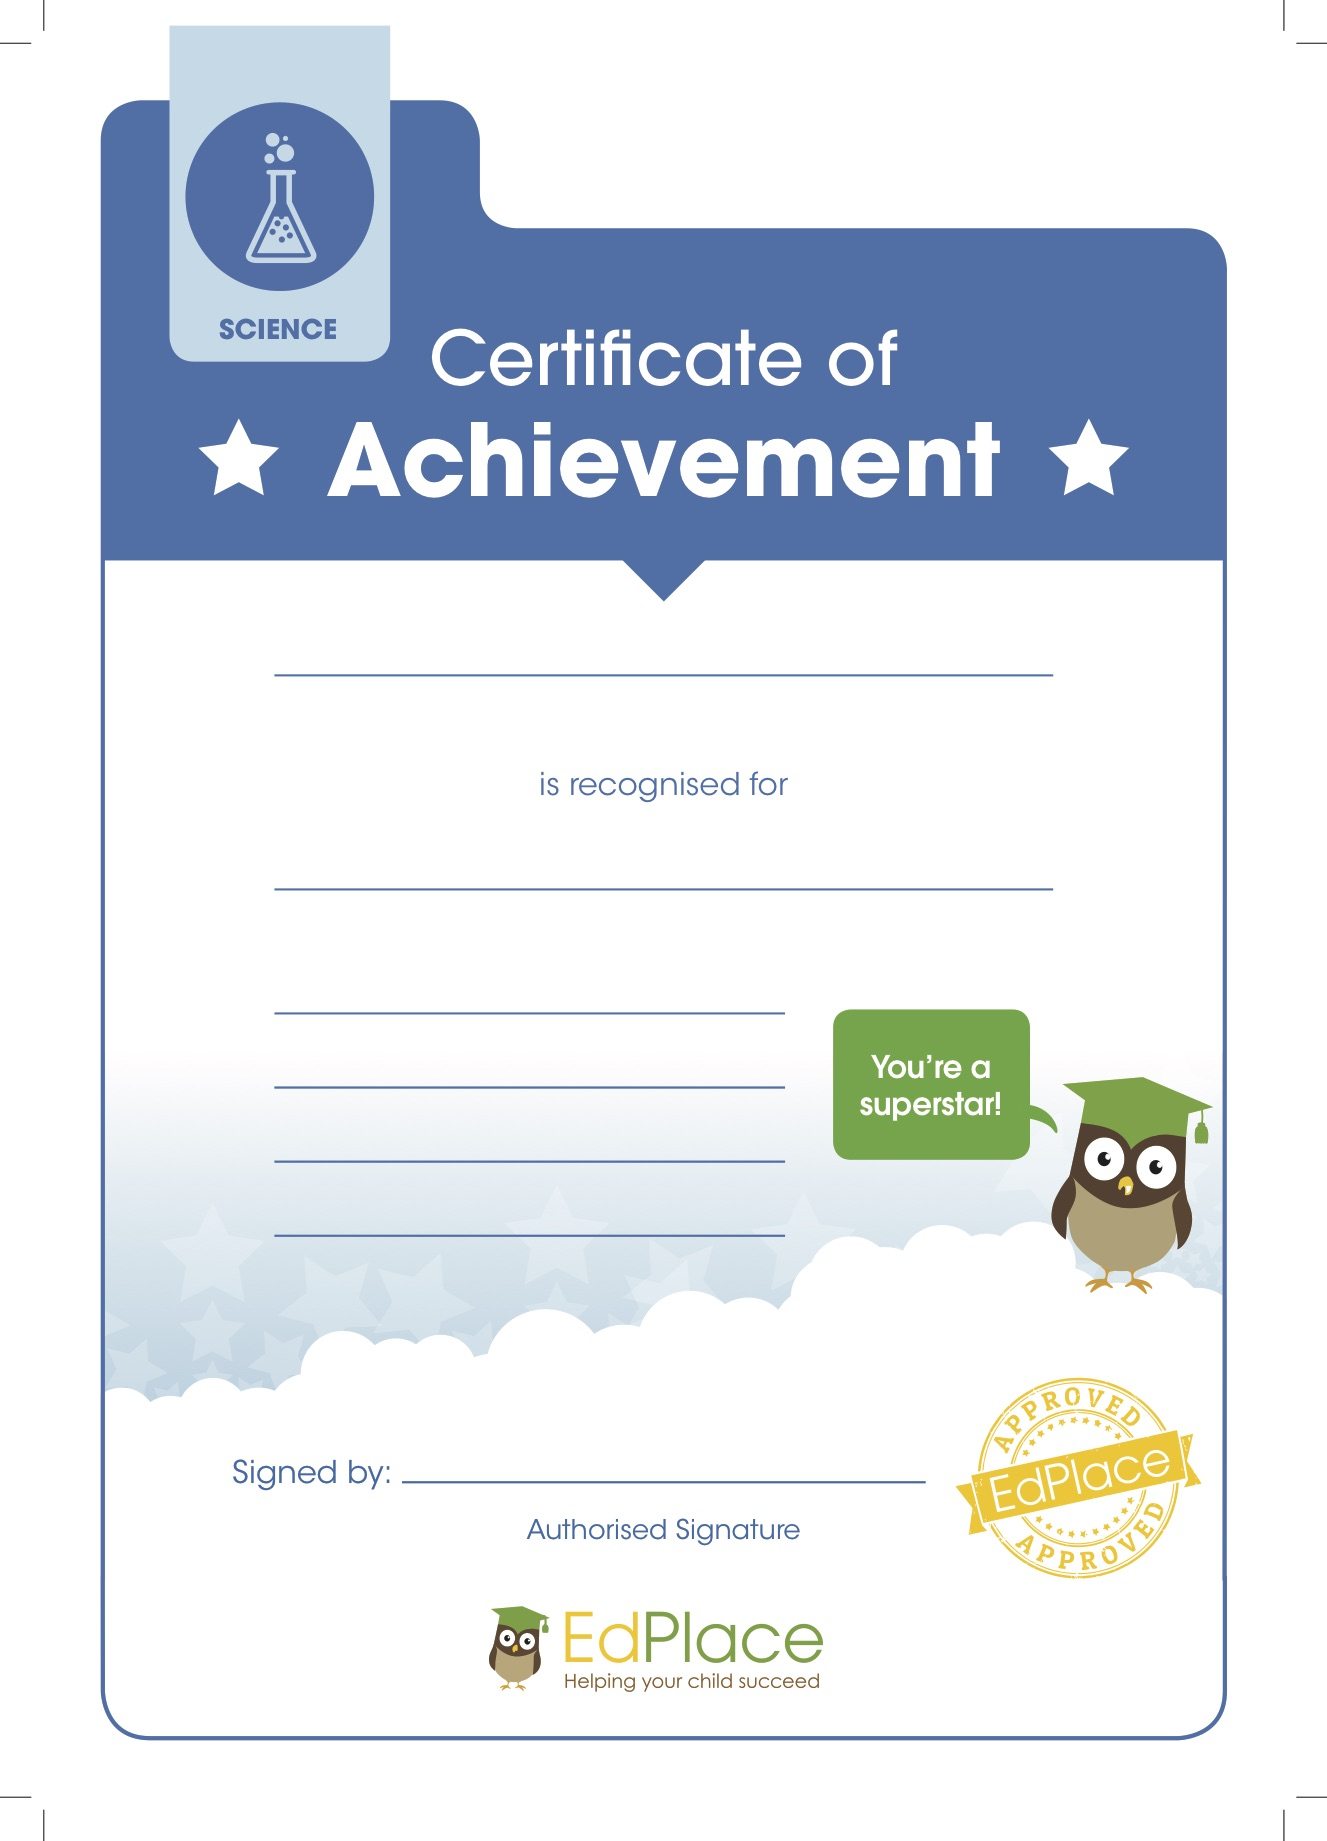 Certificate template (Science)-HiRes